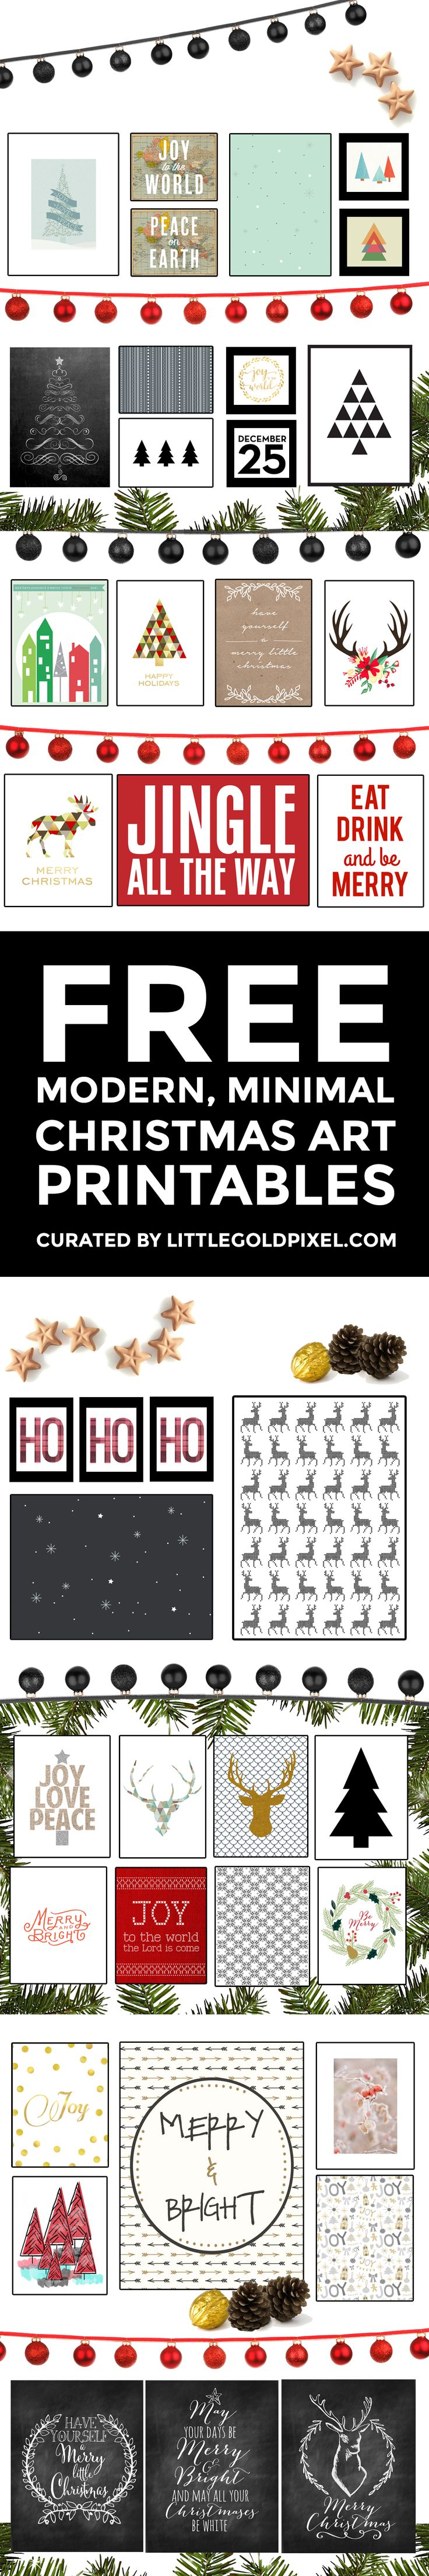 35+ Free Holiday Printables